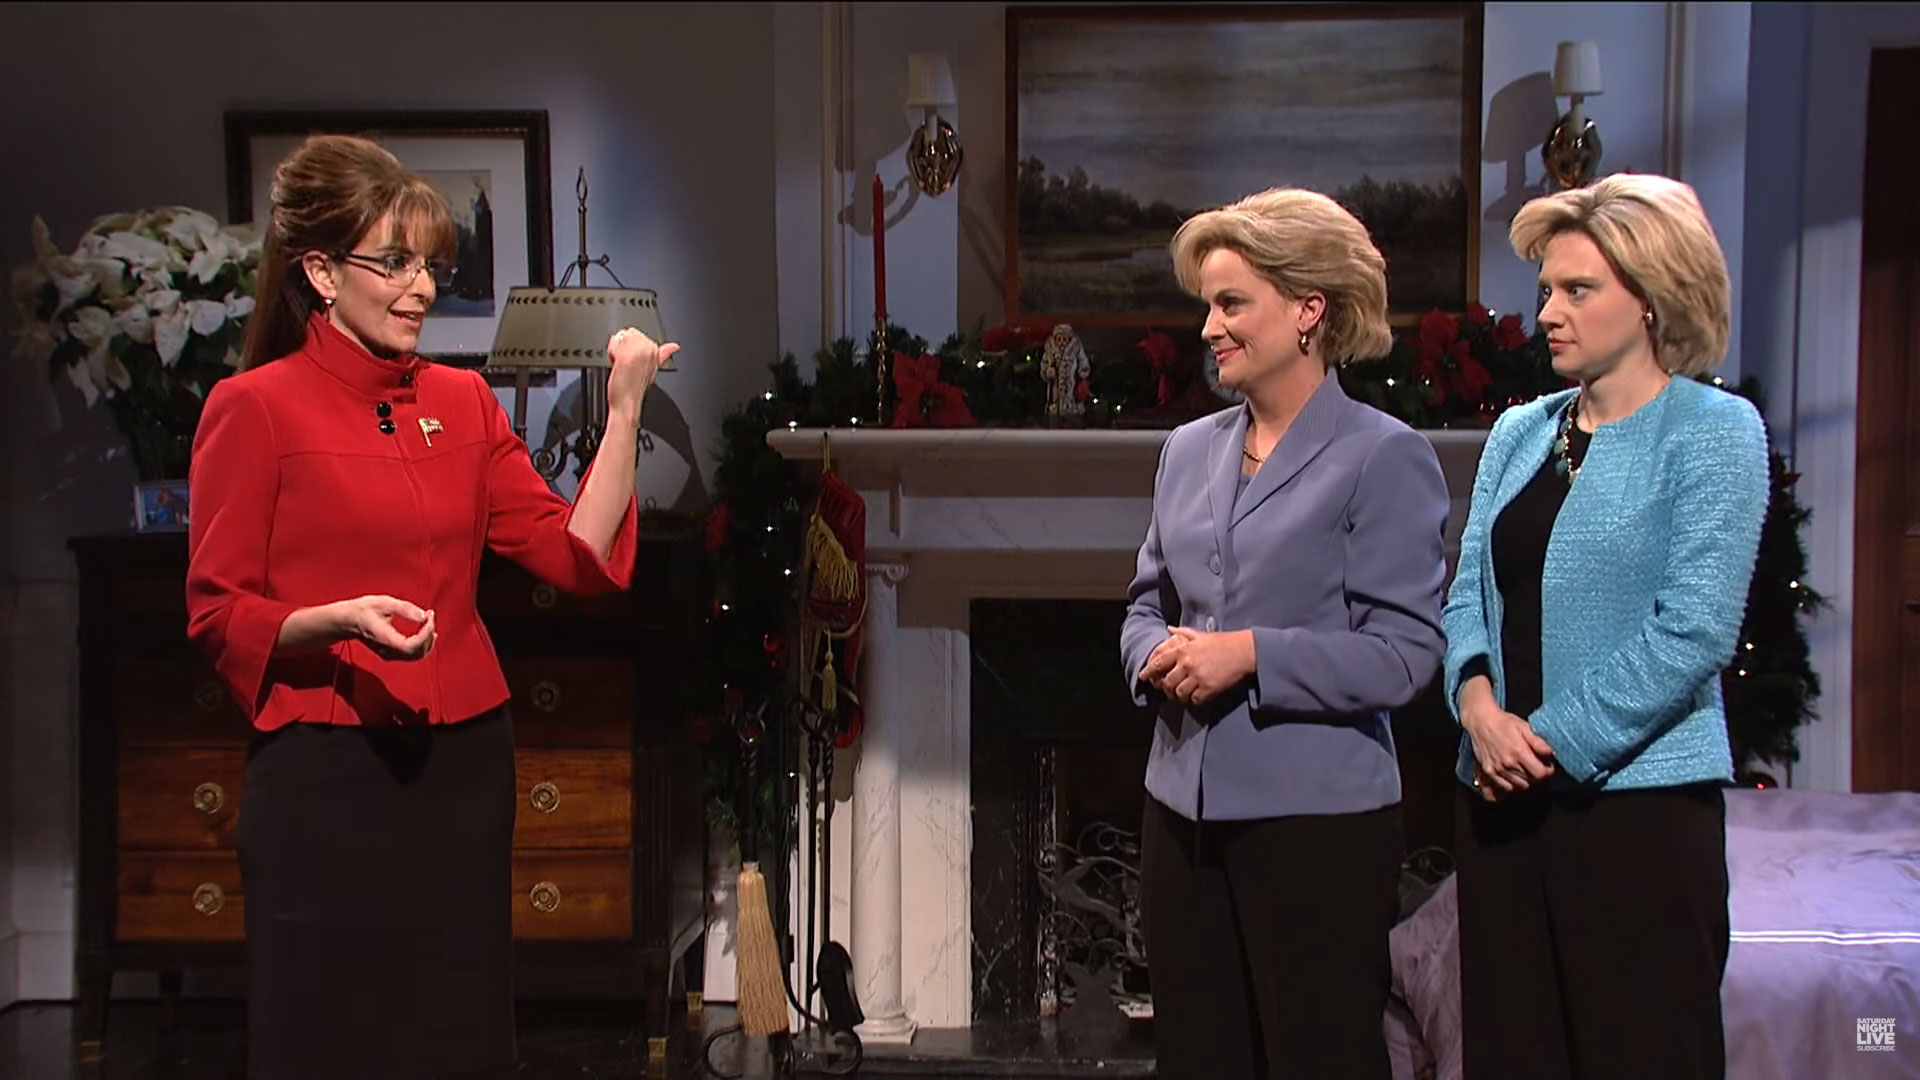 WATCH: Amy Poehler and Tina Fey are back as Hillary Clinton and Sarah Palin on Saturday Night Live